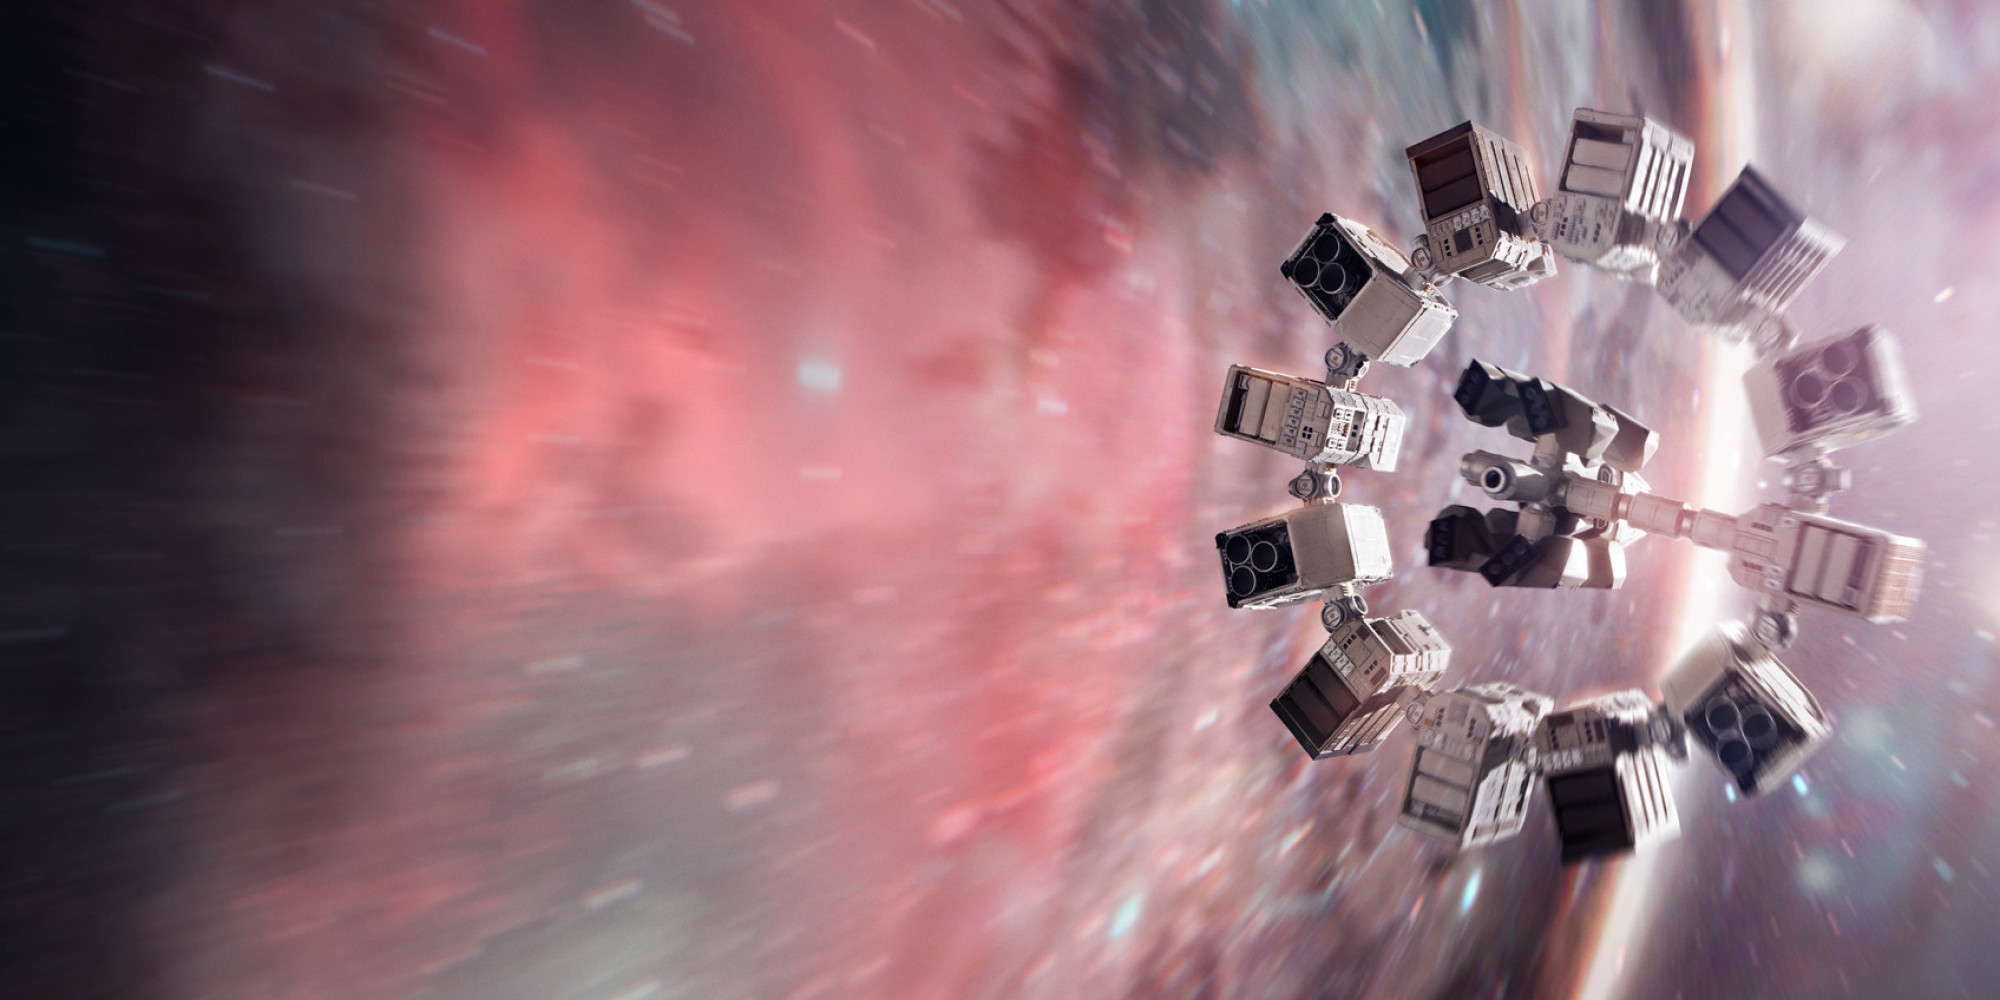 minor-issues-aside-interstellar-was-excellent-spoilers-review-3595ba7b-f565-426c-9a4b-782201e5320e